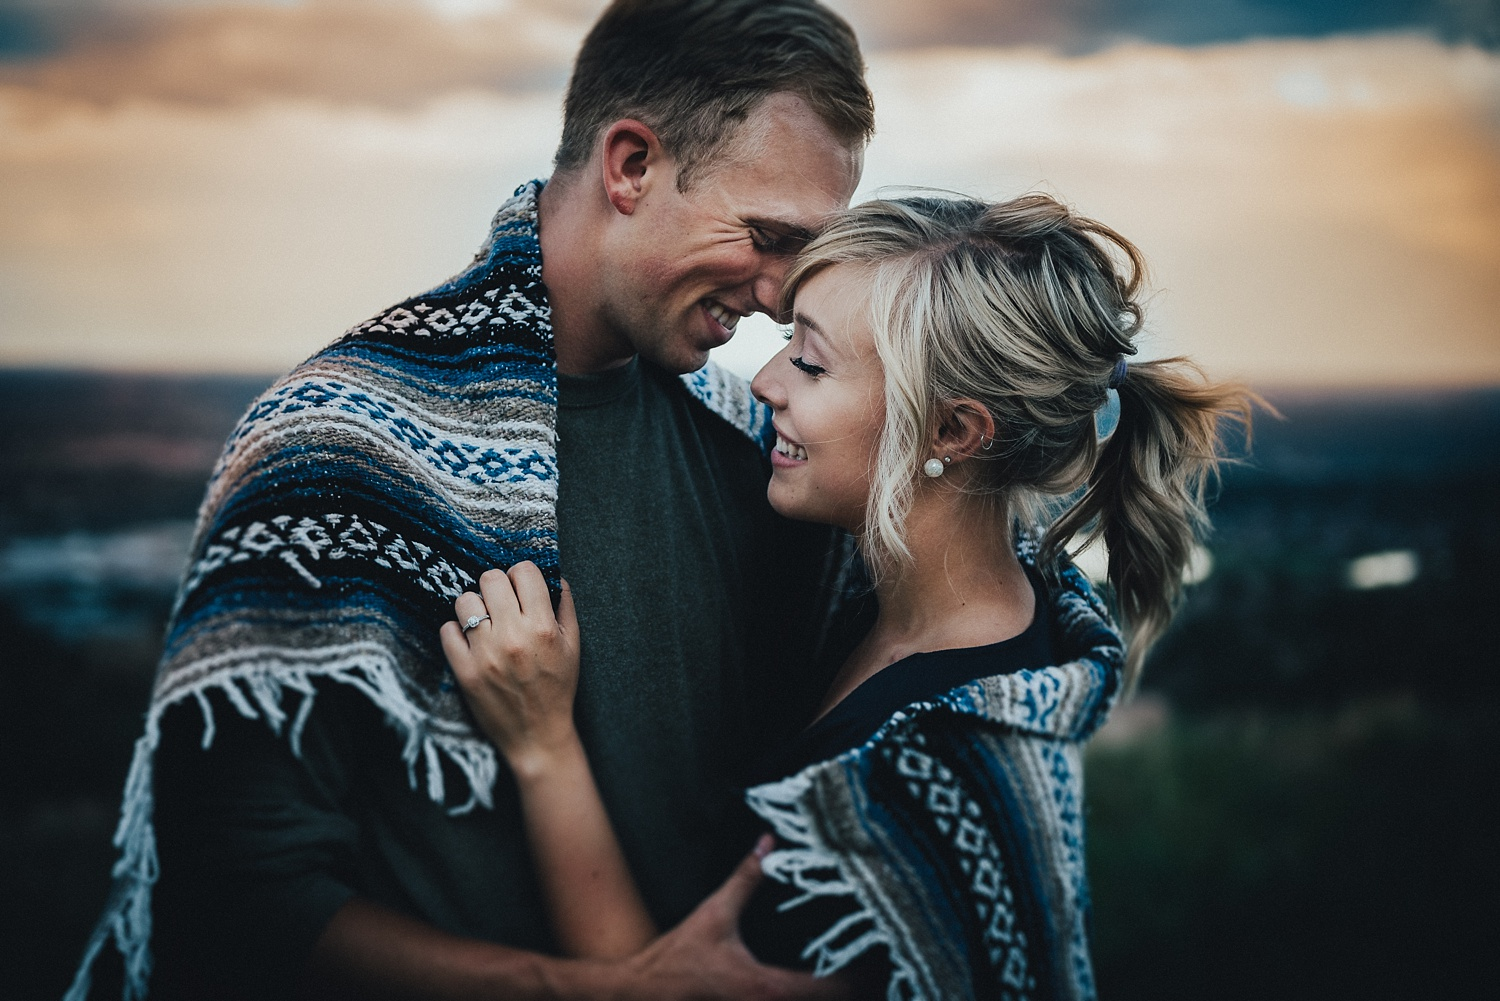 Nate_shepard_photography_engagement_wedding_photographer_denver_colorado_0292.jpg